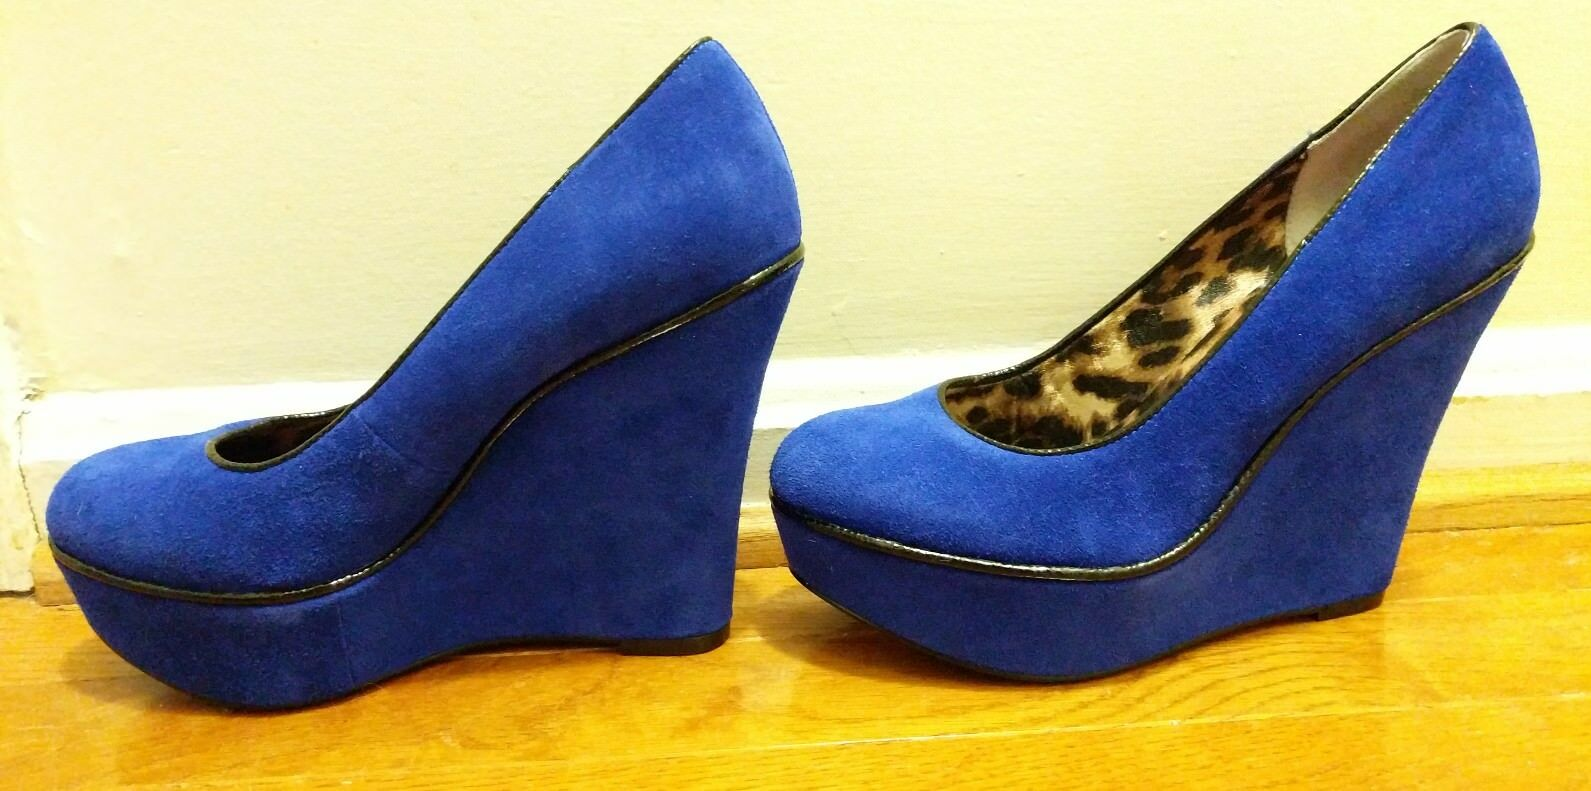 Betsey Johnson Wedges Sz 6 1/2 Suede B Mixxy P Blau Suede 1/2 Schuhes Heels Pin-Up Retro 512293